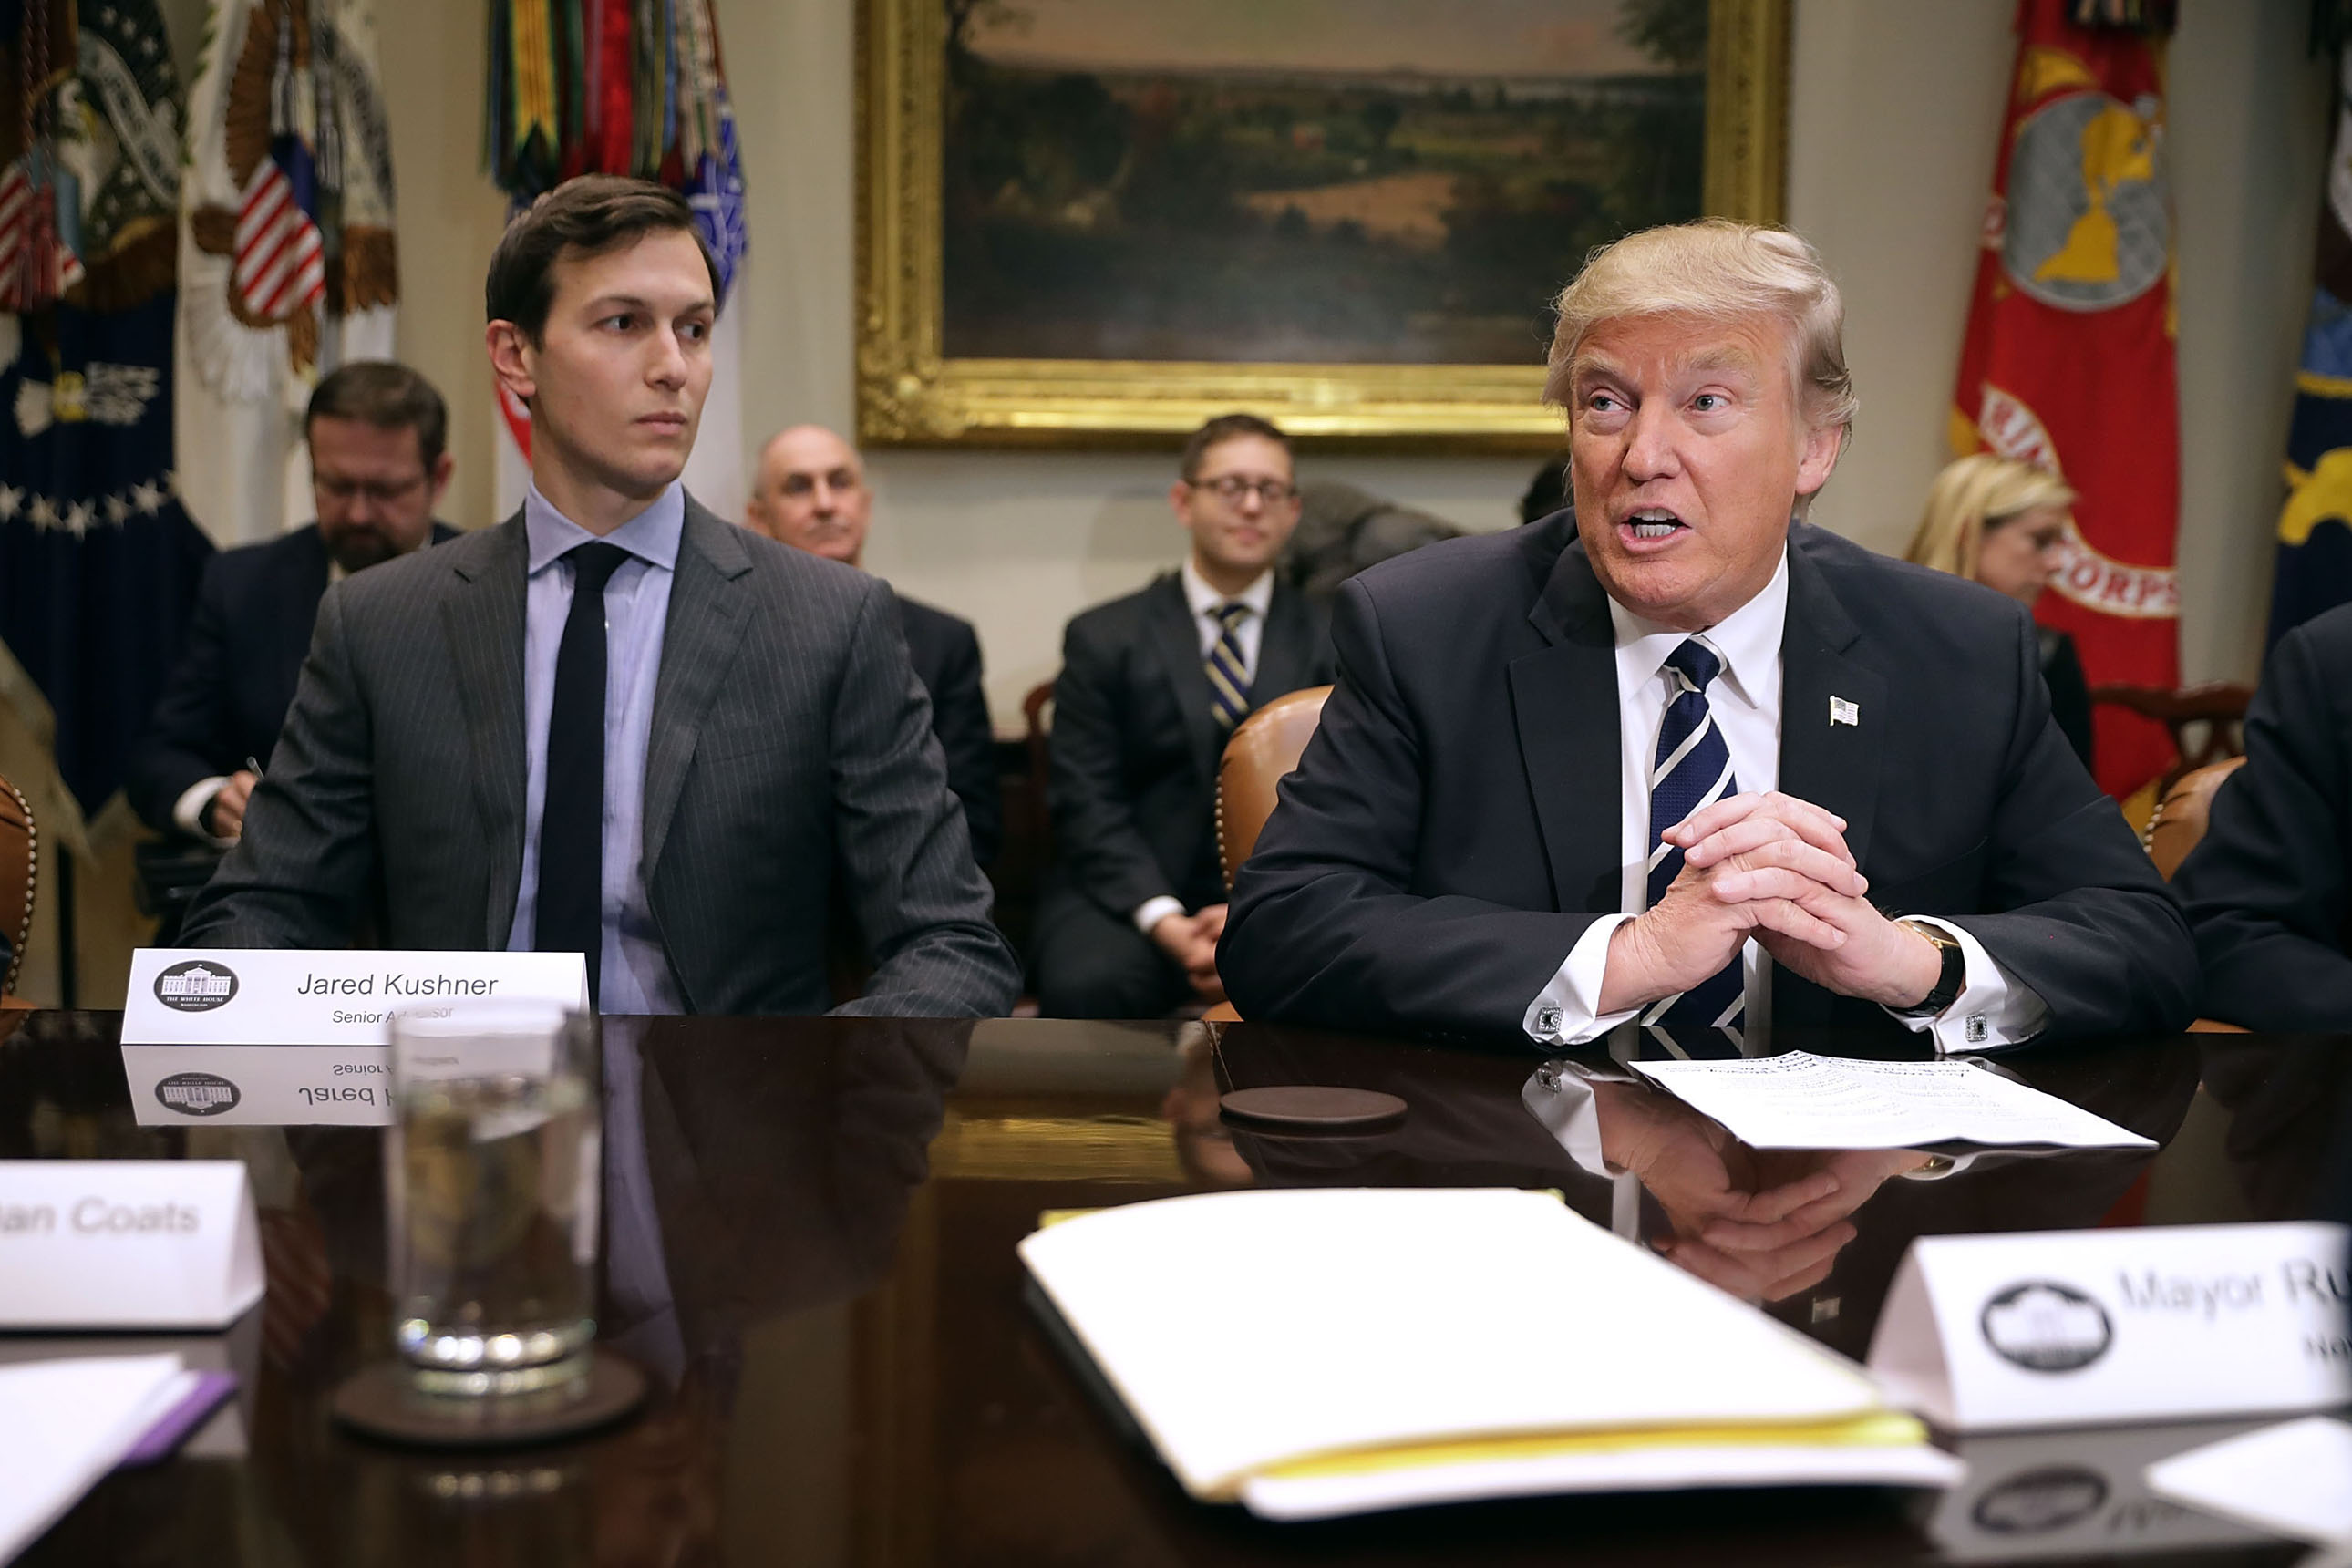 U.S. President Donald Trump (R) delivers remarks at the beginning of a meeting with his son-in-law and Senior Advisor Jared Kushner and government cyber security experts in the Roosevelt Room at the White House in Washington, D.C., Jan. 31, 2017.